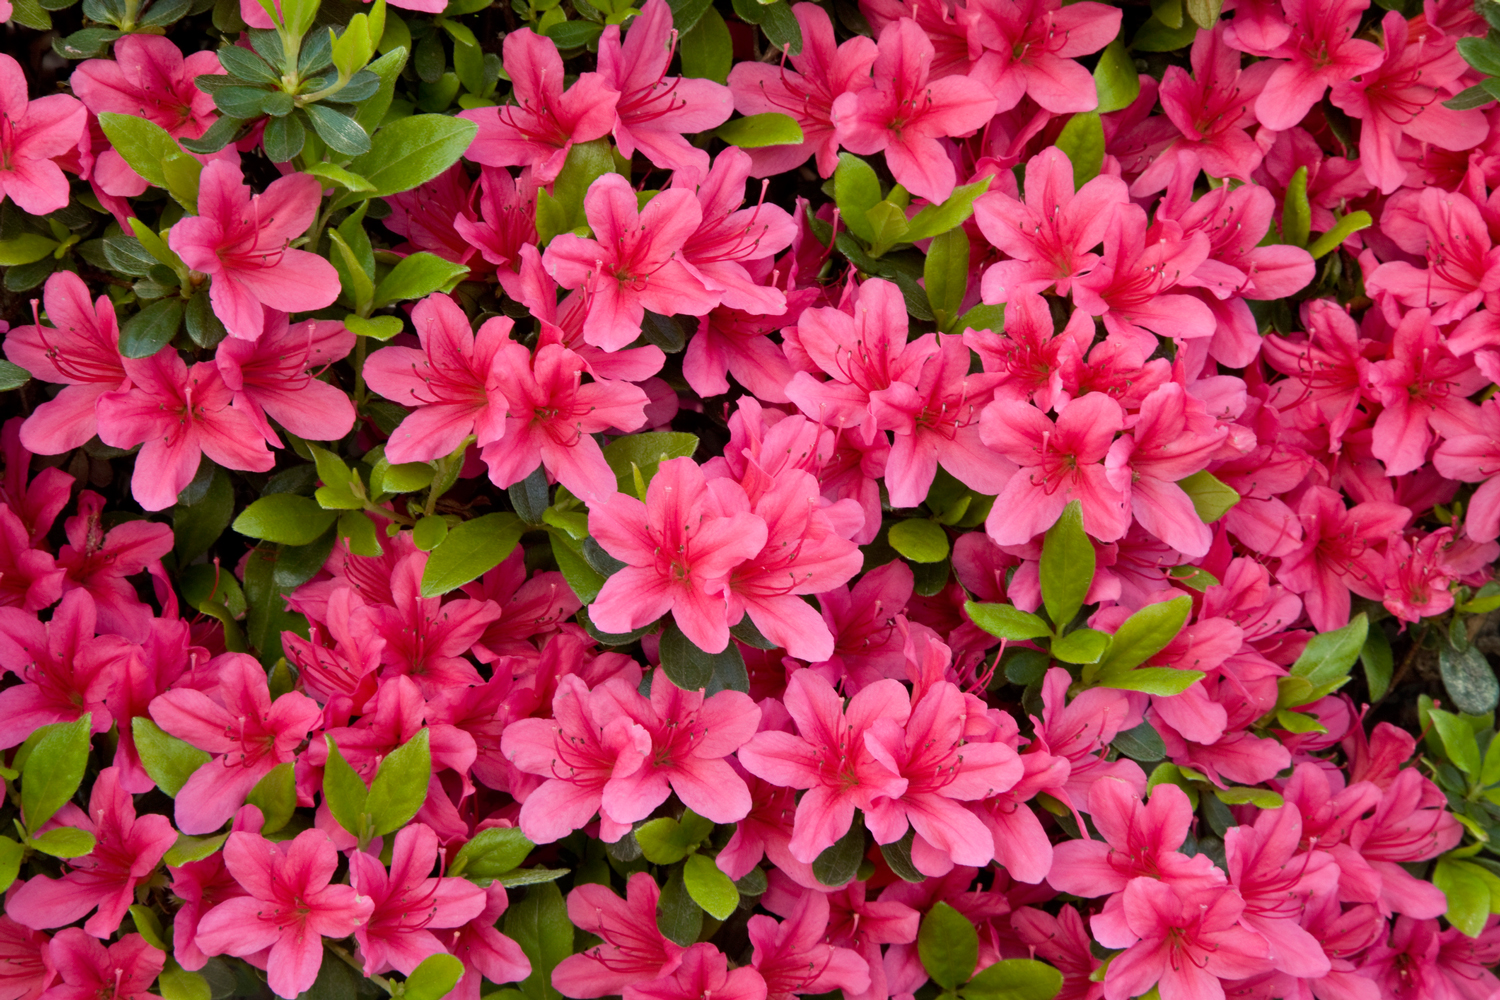 Late Spring to Early Summer: Azalea